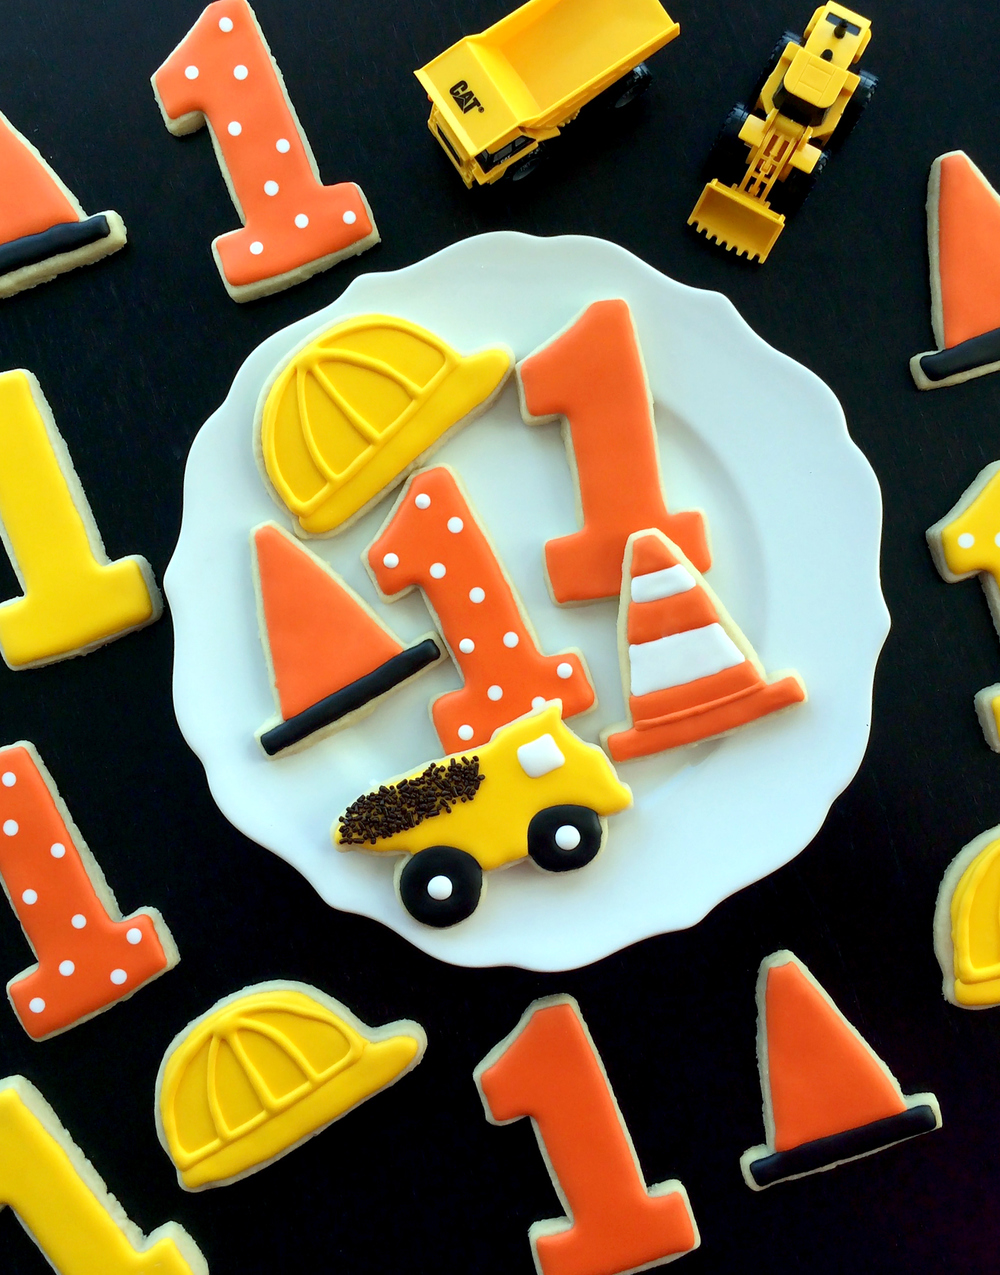 Construction-themed sugar cookies